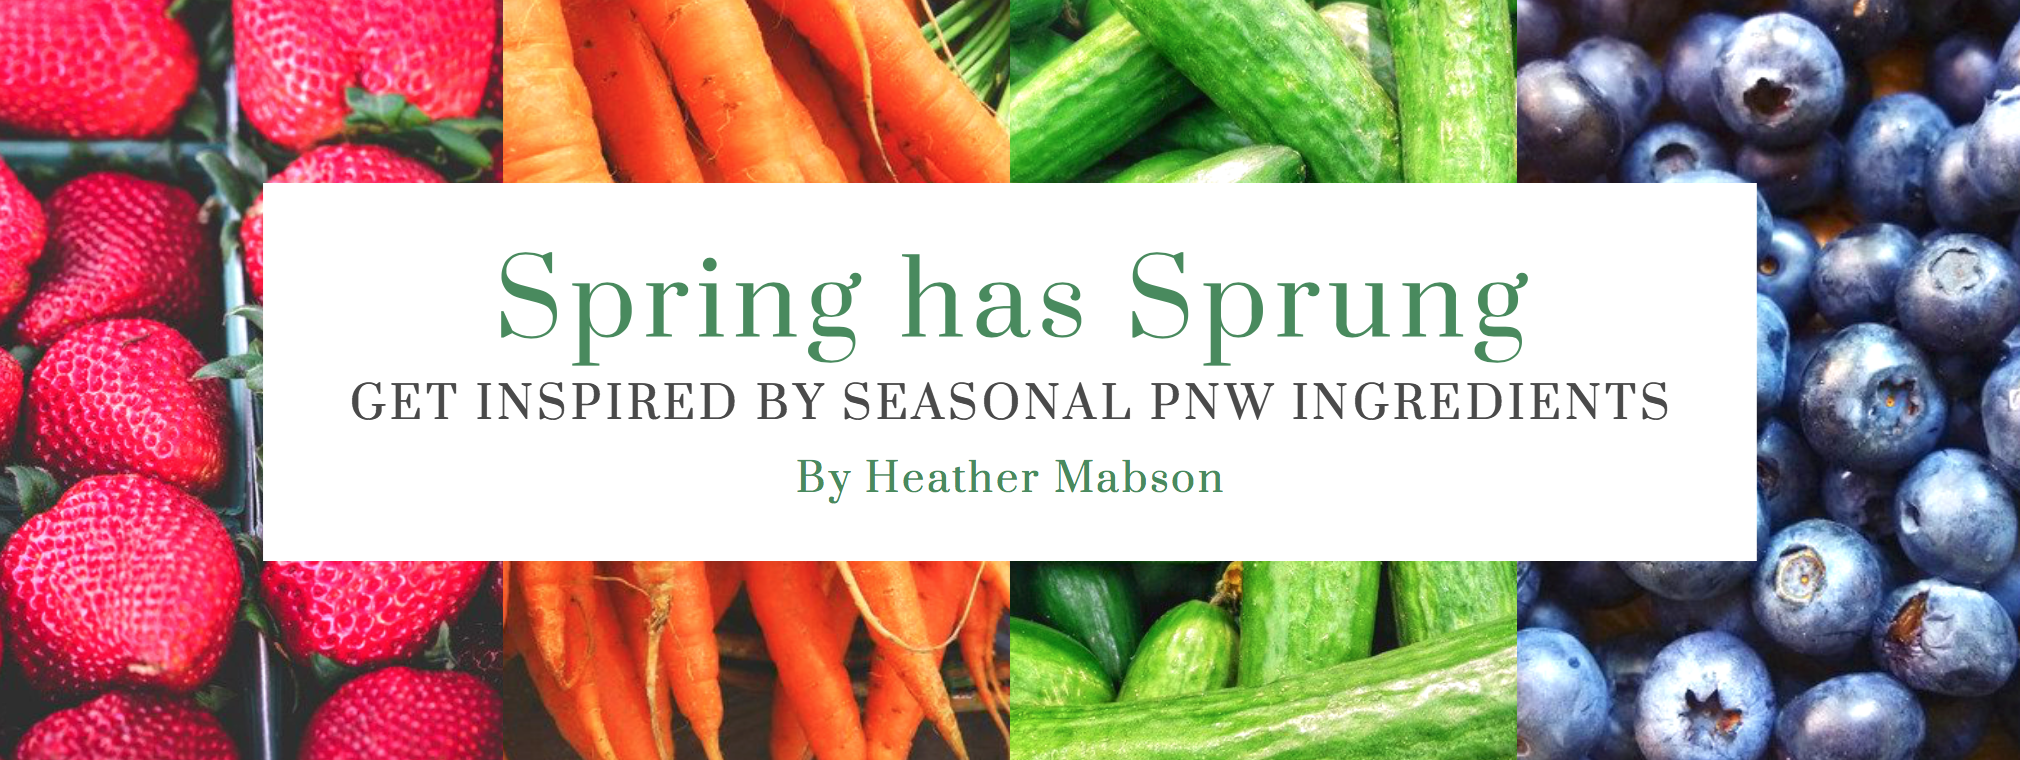 spring has sprung.png